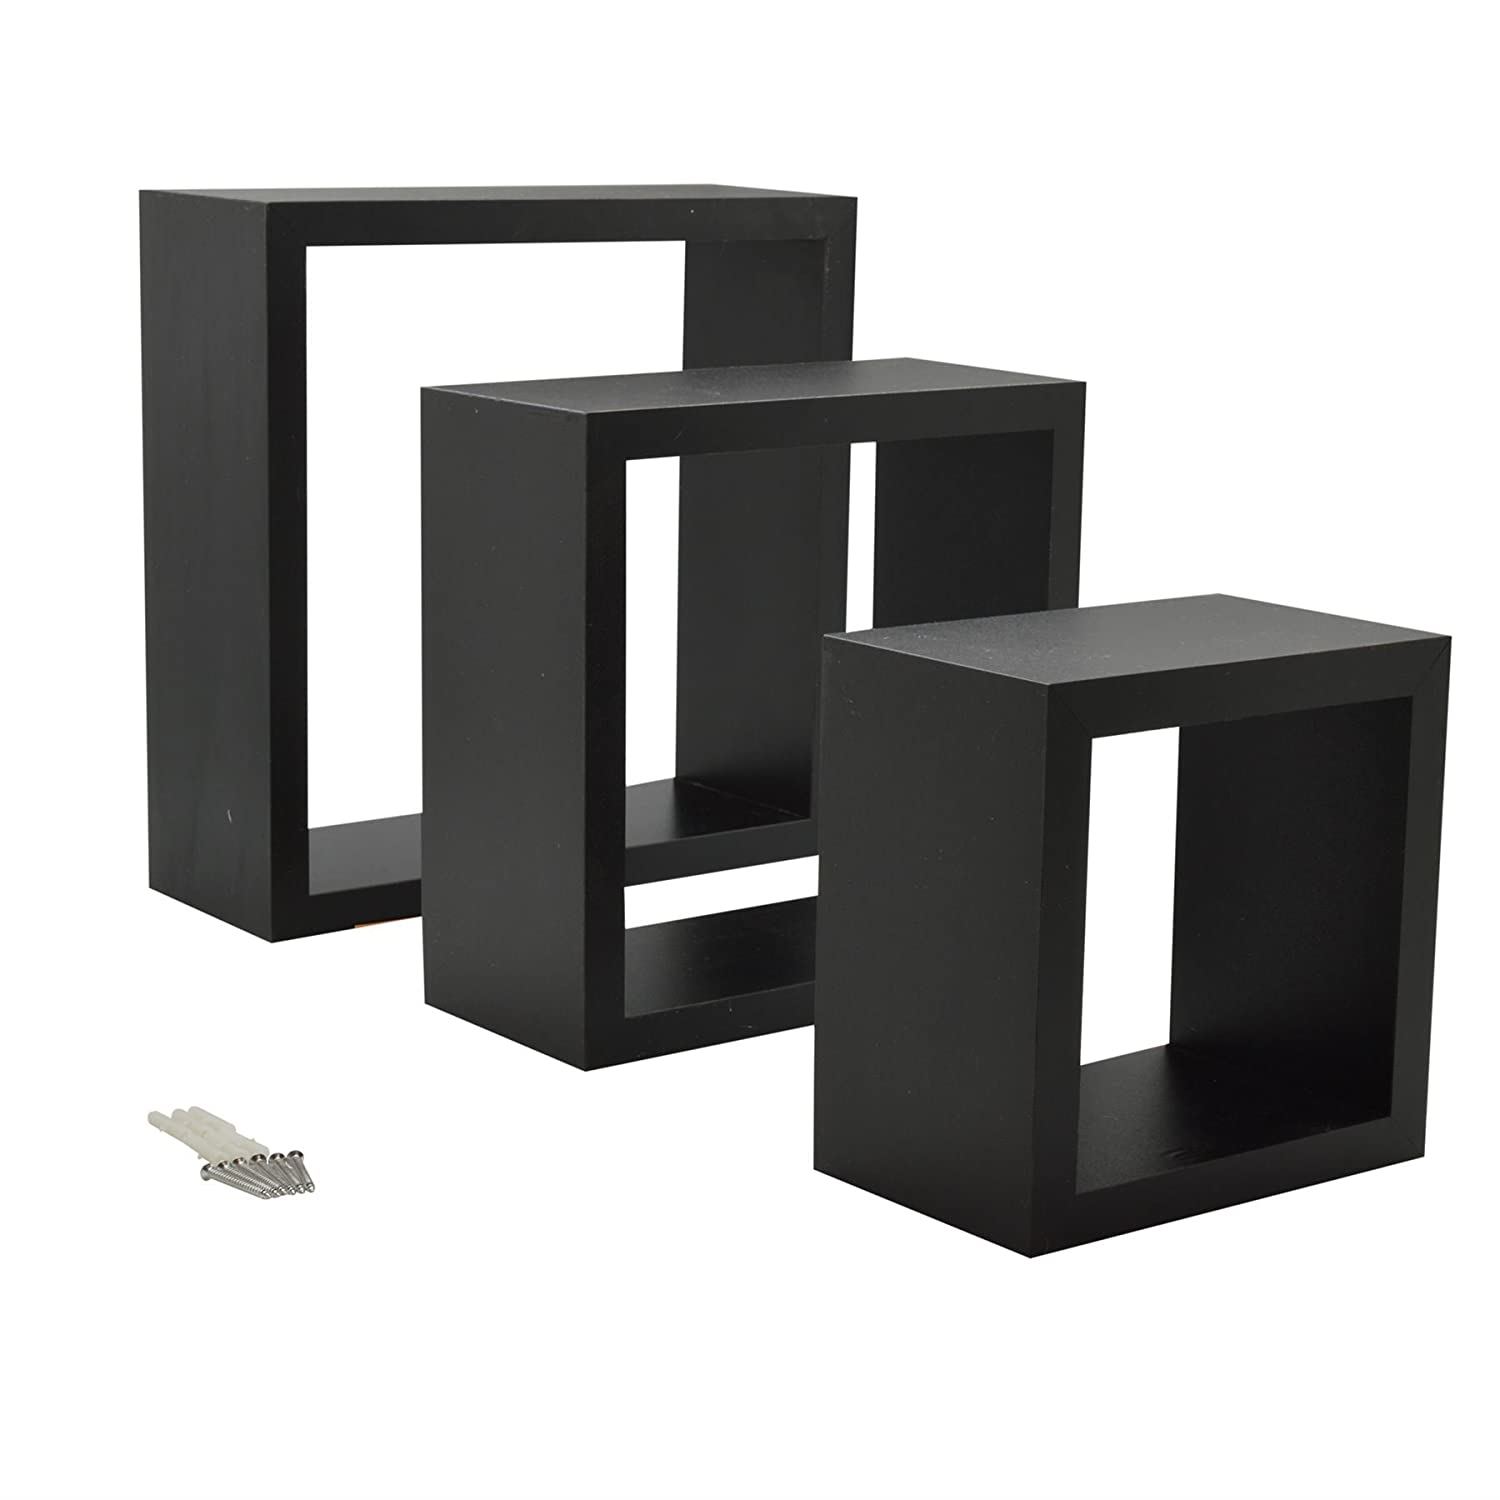 Harbour Housewares Black Square Floating Box Shelves - 3 Different Sizes - Set of 3